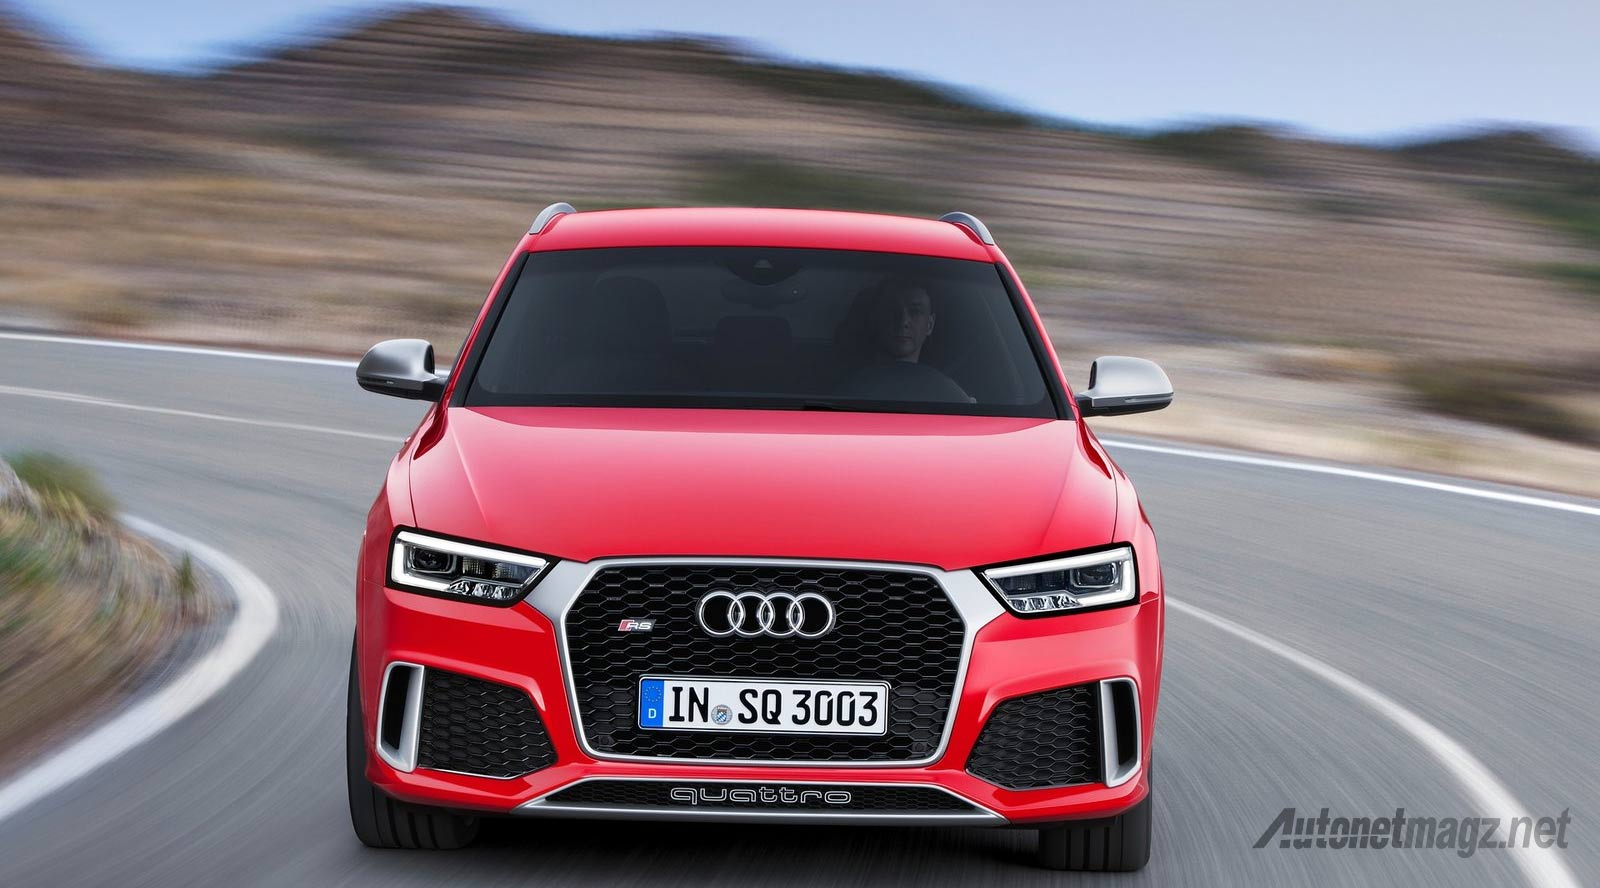 Wallpaper-Audi-RS-Q3-2015